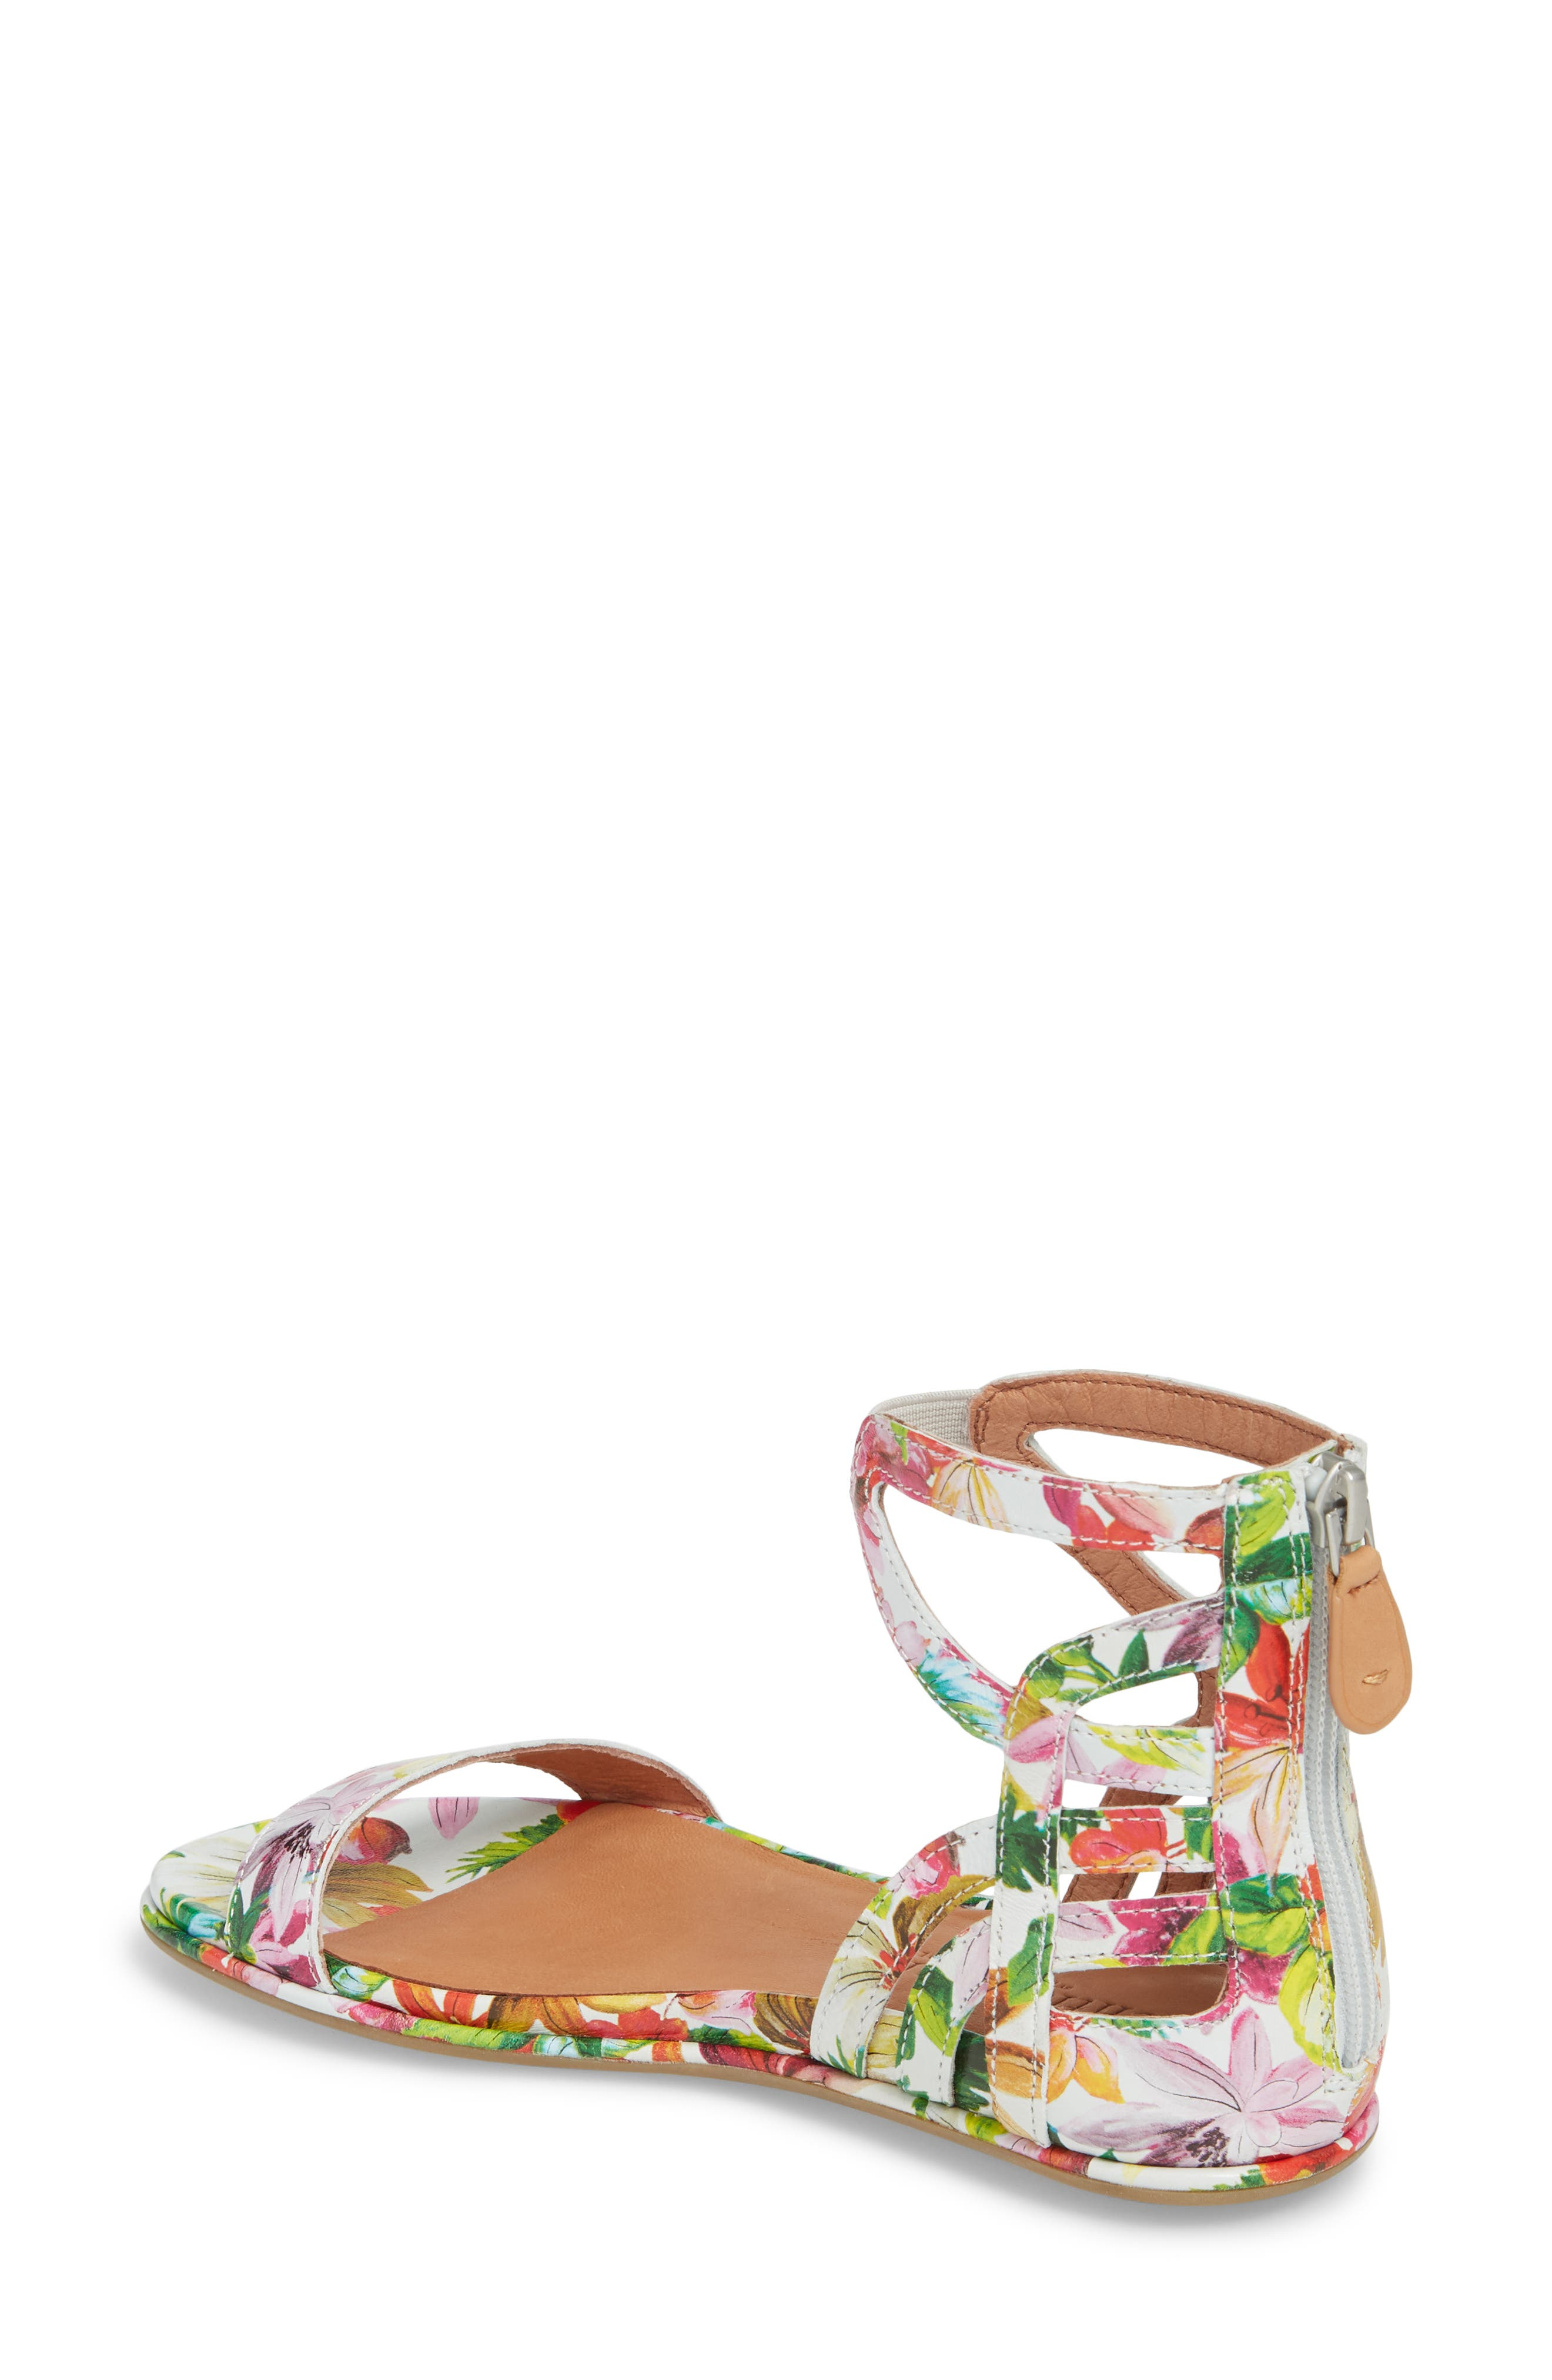 GENTLE SOULS BY KENNETH COLE, Larissa Sandal, Alternate thumbnail 2, color, PALM PRINTED LEATHER